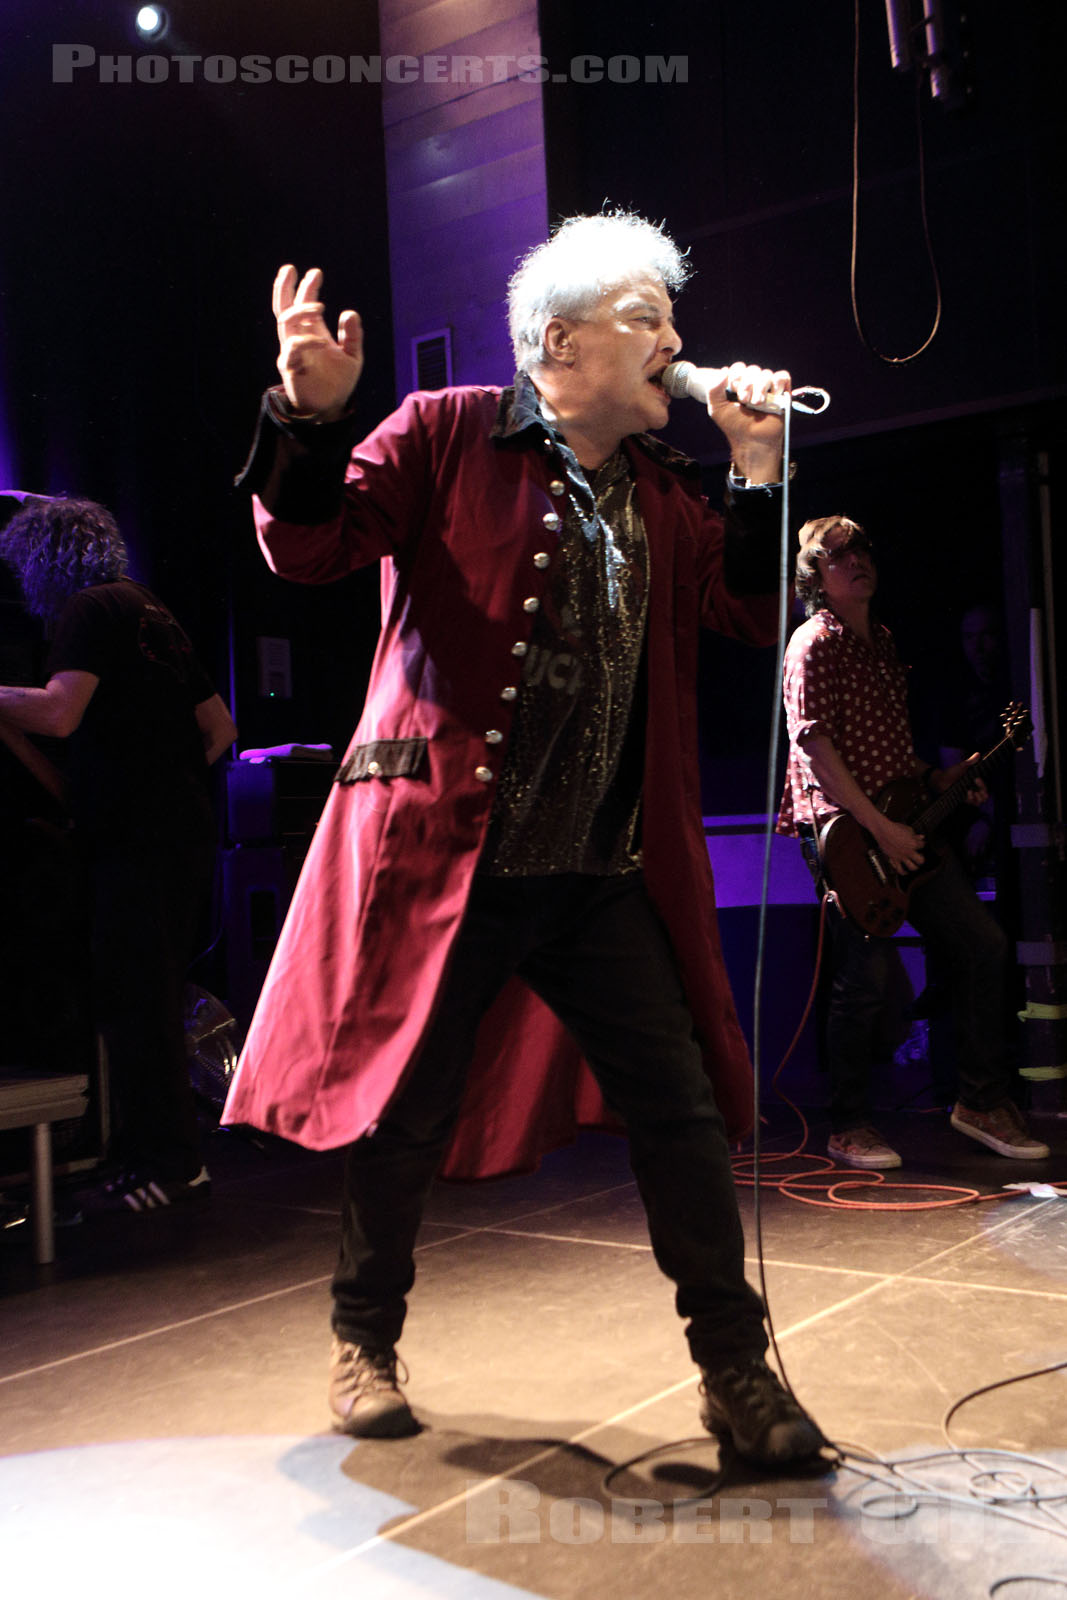 JELLO BIAFRA AND THE GUANTANAMO SCHOOL OF MEDECINE - 2016-08-21 - PARIS - Petit Bain